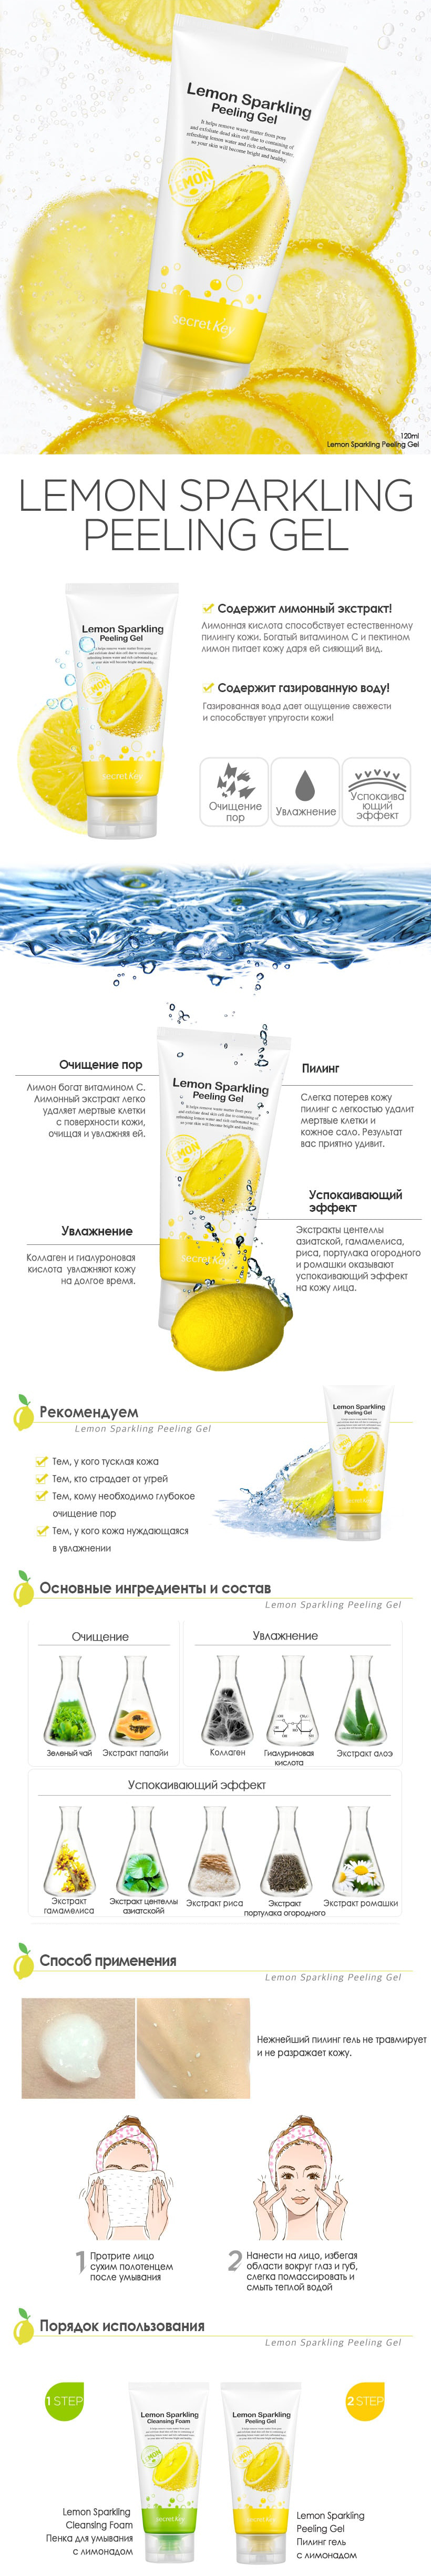 secret_key_lemon_sparkling_peeling_gel